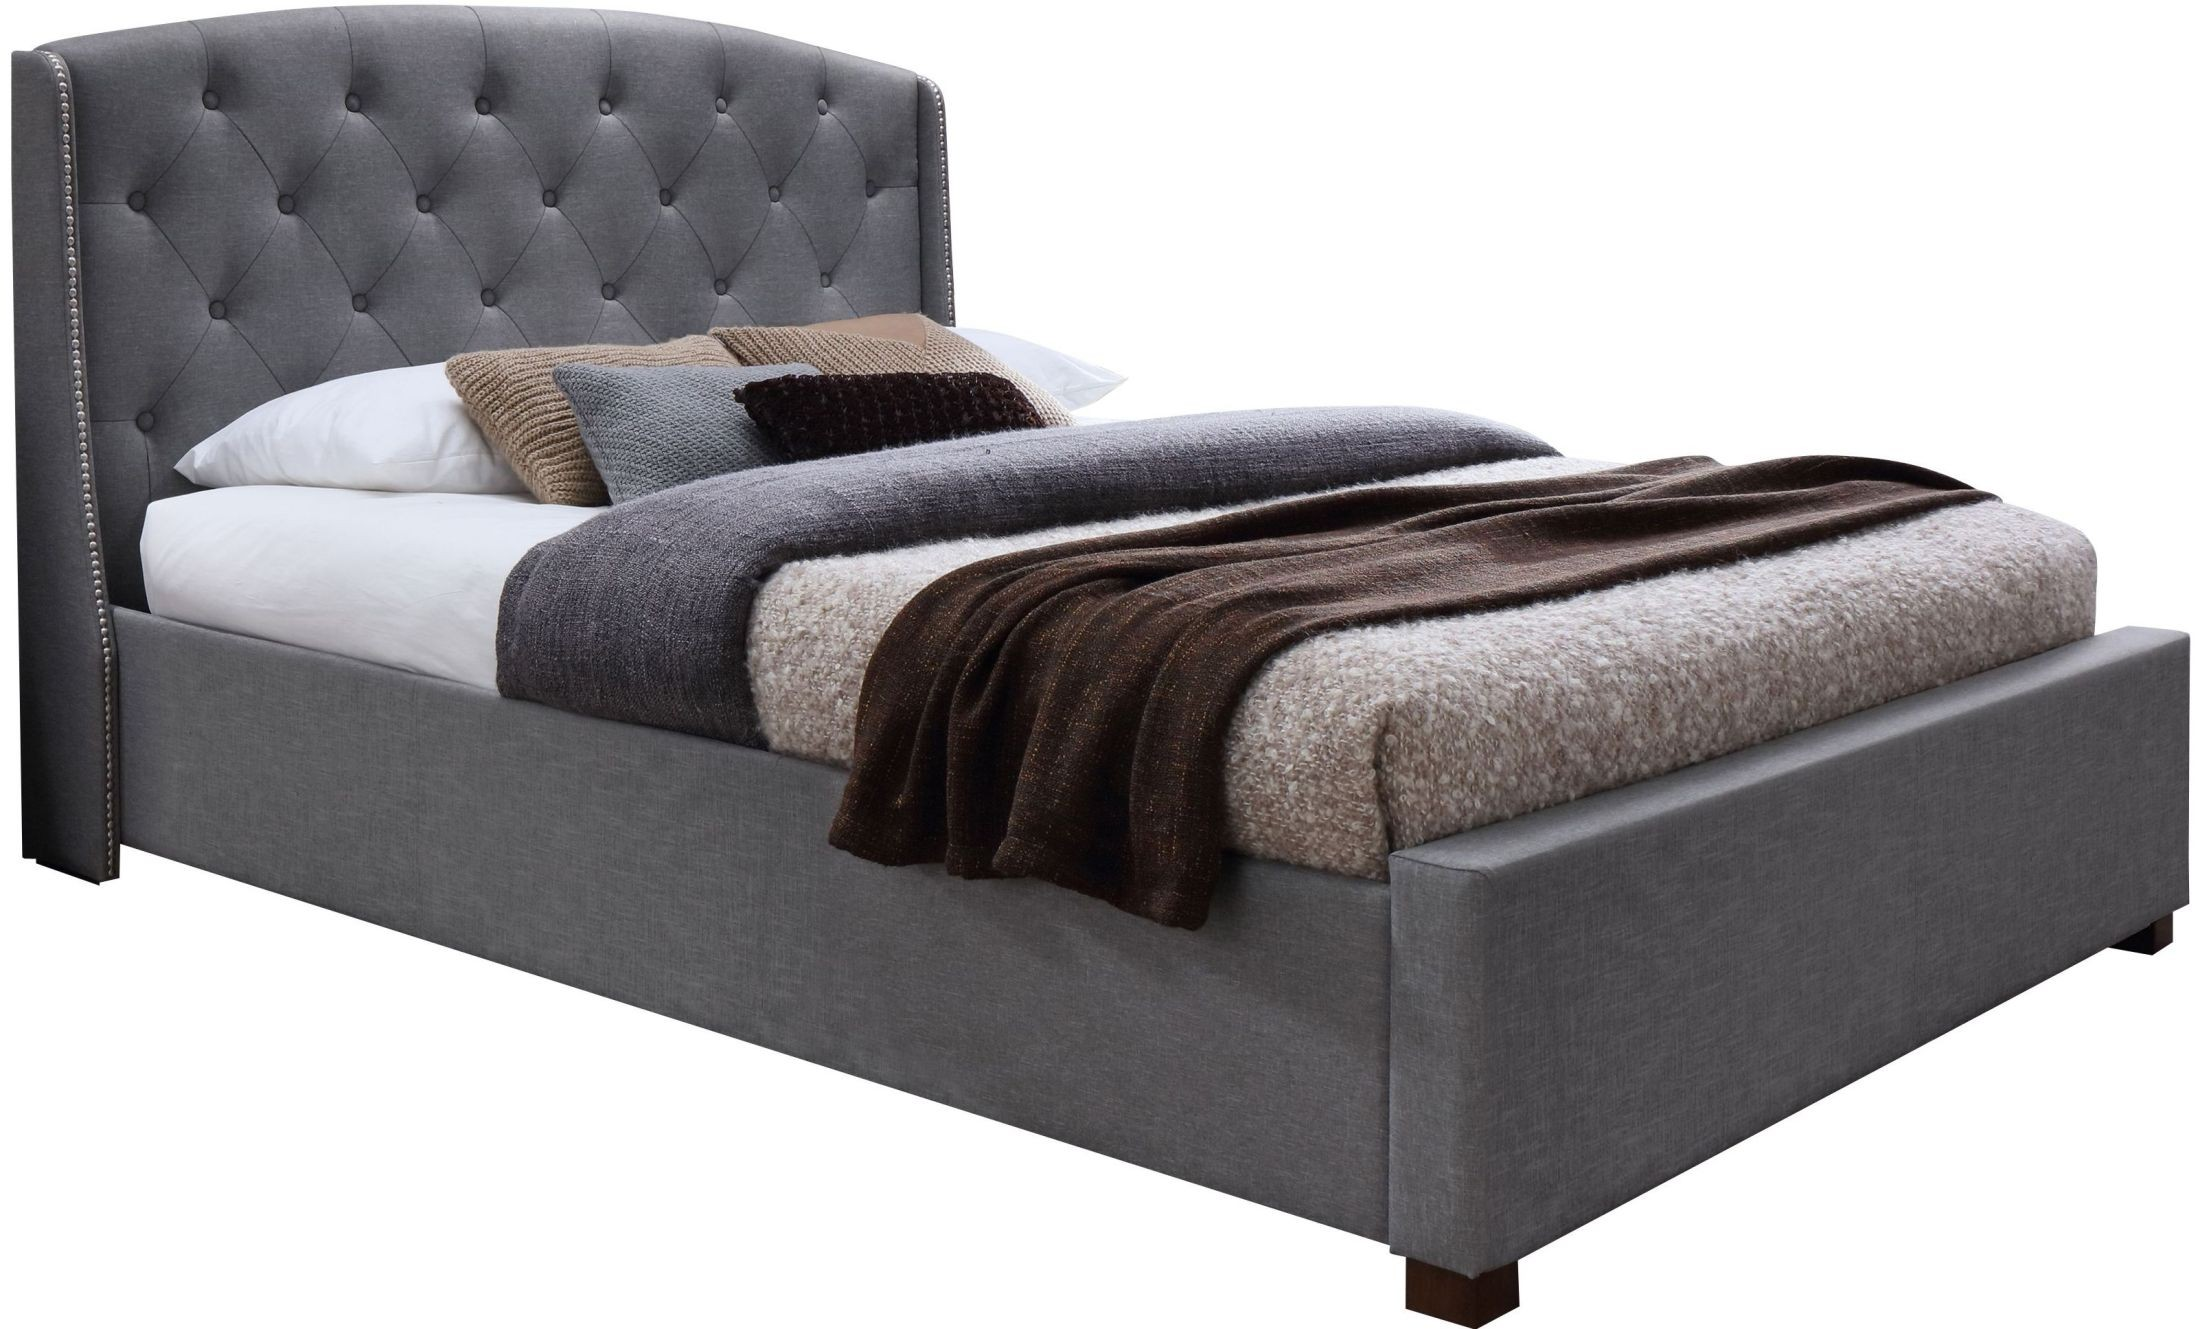 Iris Gray King Upholstered Platform Bed 18252 K J M